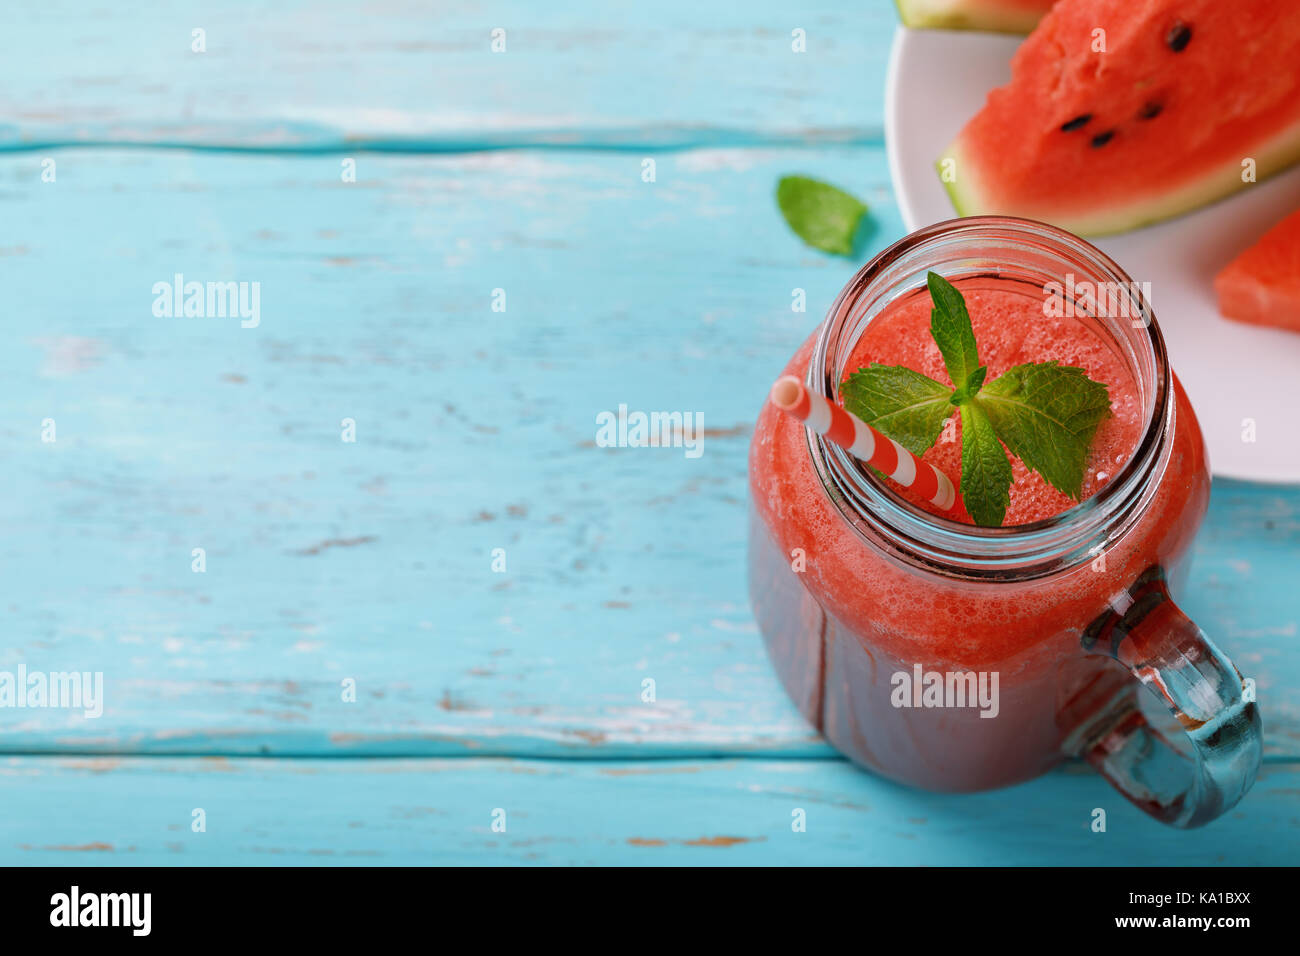 Freshly made smoothies from watermelon with space for text - Stock Image